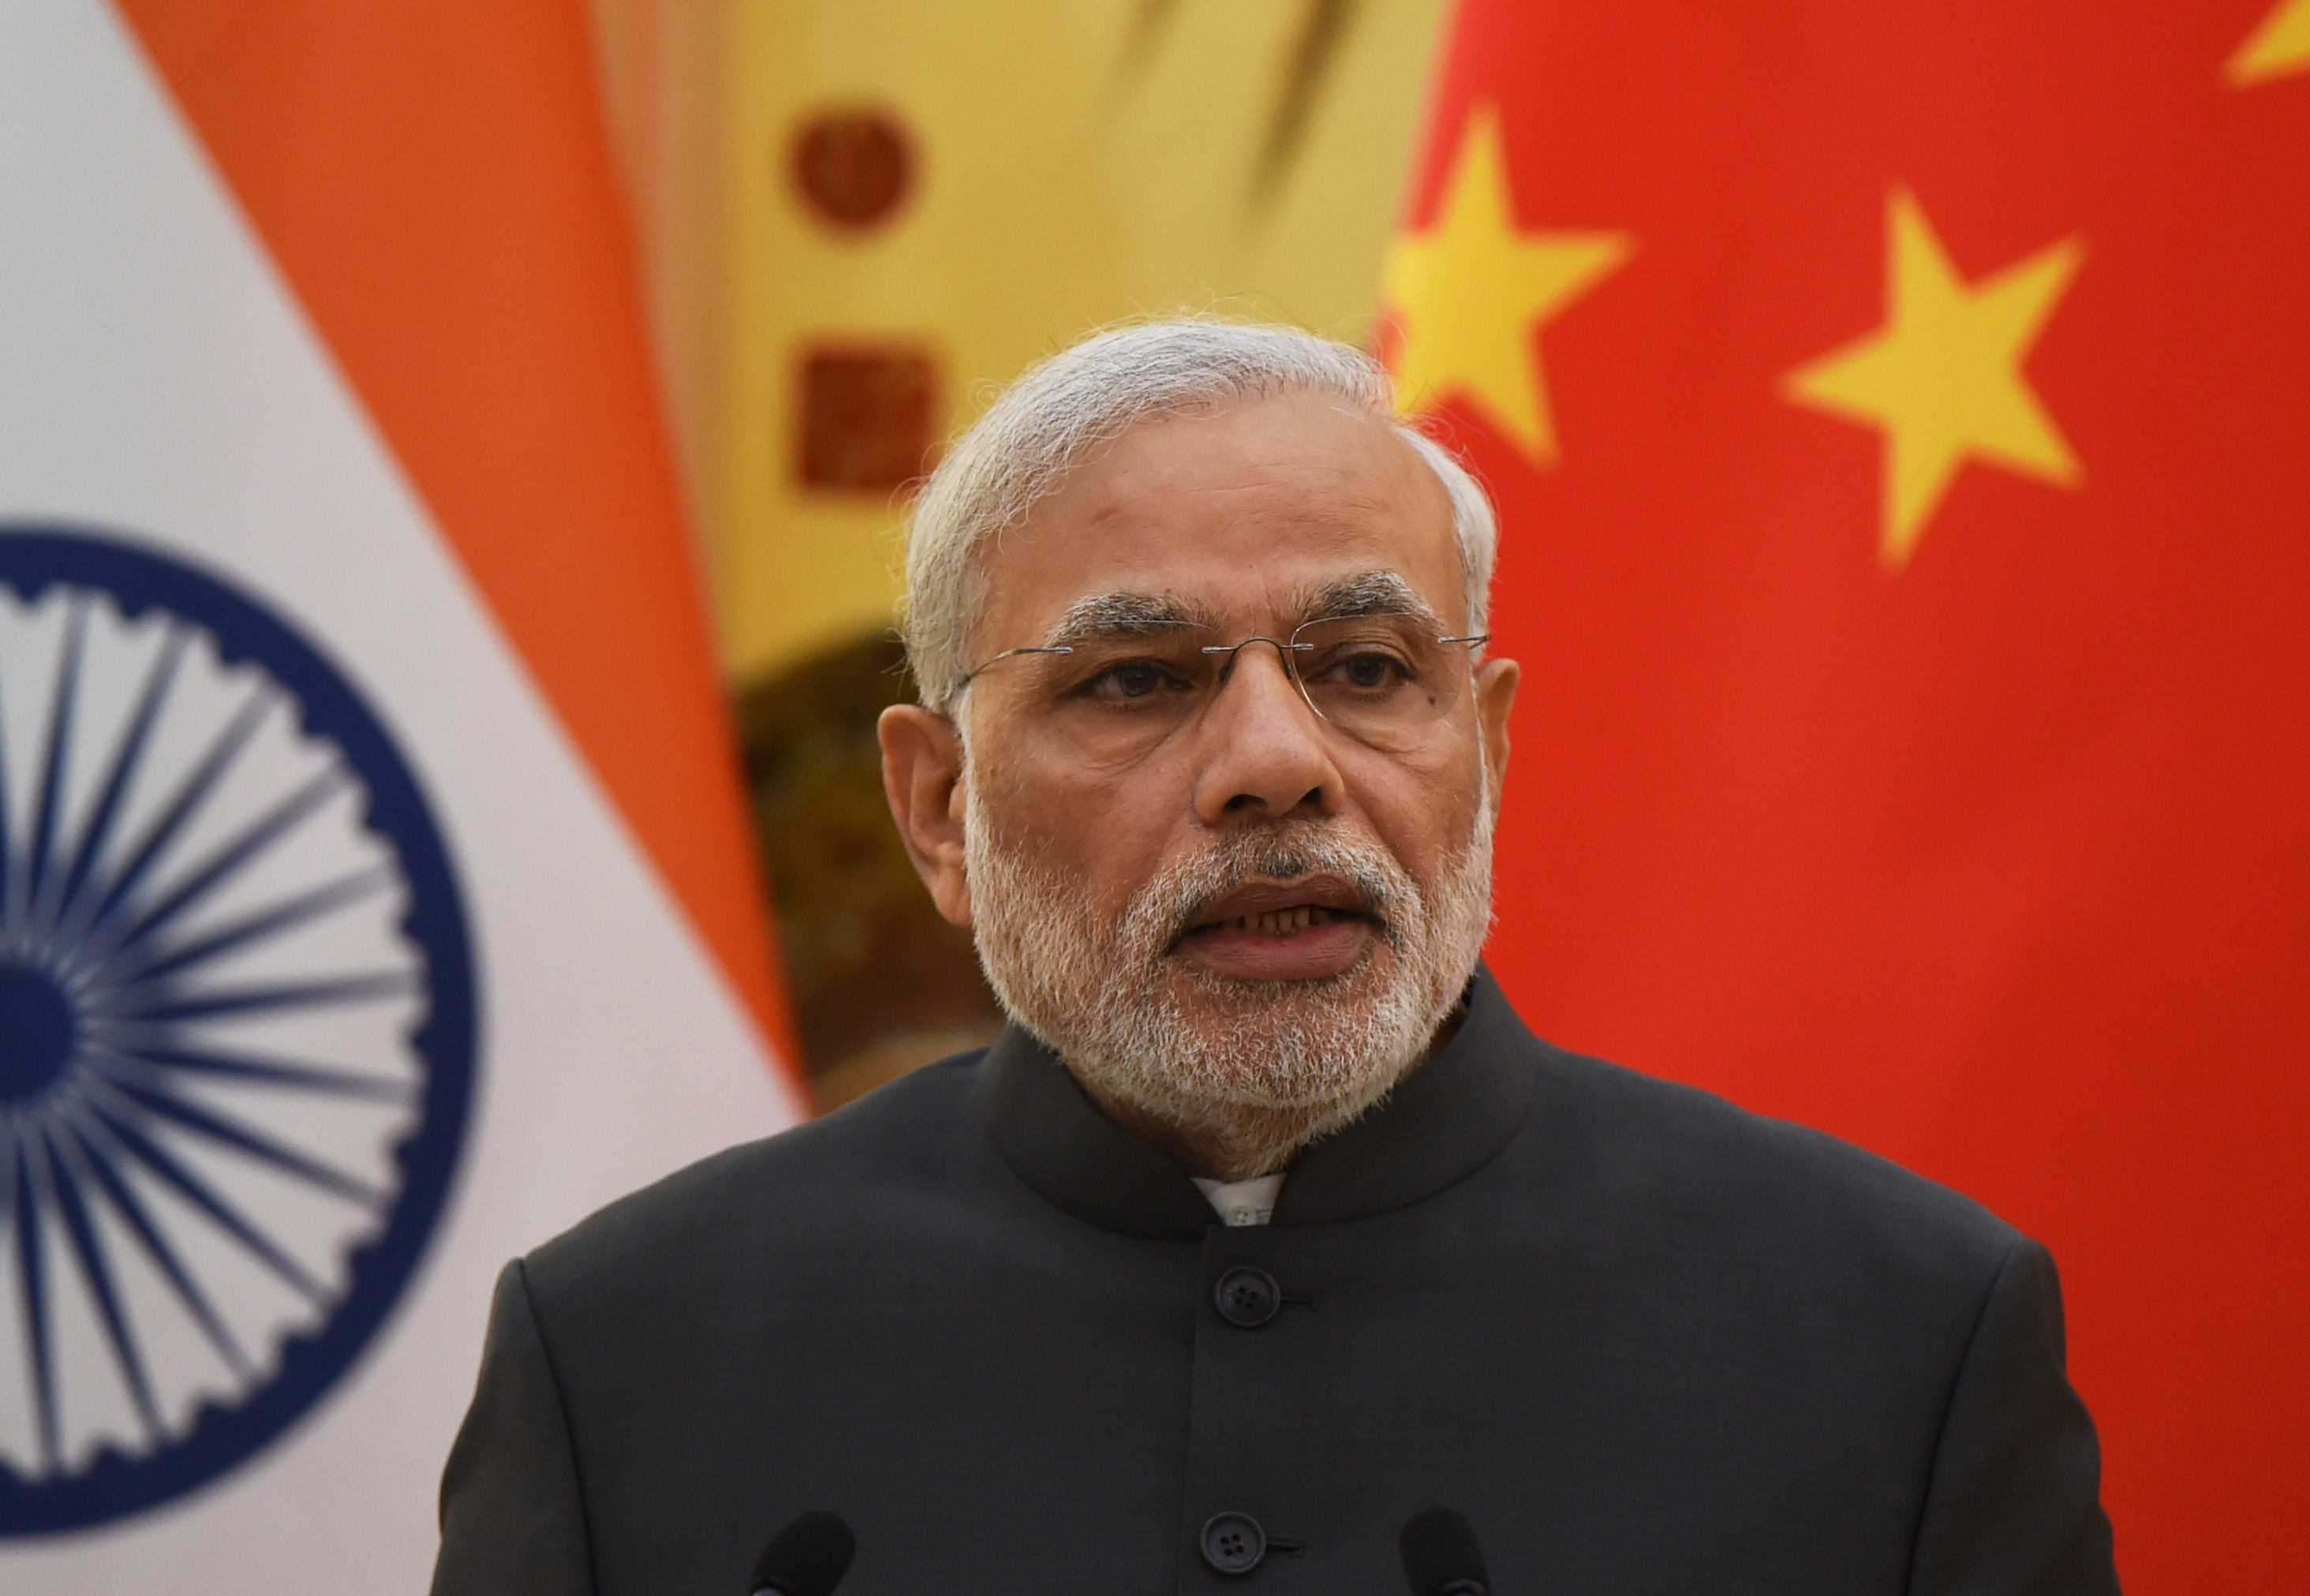 India's Prime Minister Narendra Modi speaks at a joint press conference with Chinese Premier Li Keqiang (not seen) in the Great Hall of the People in Beijing on May 15, 2015